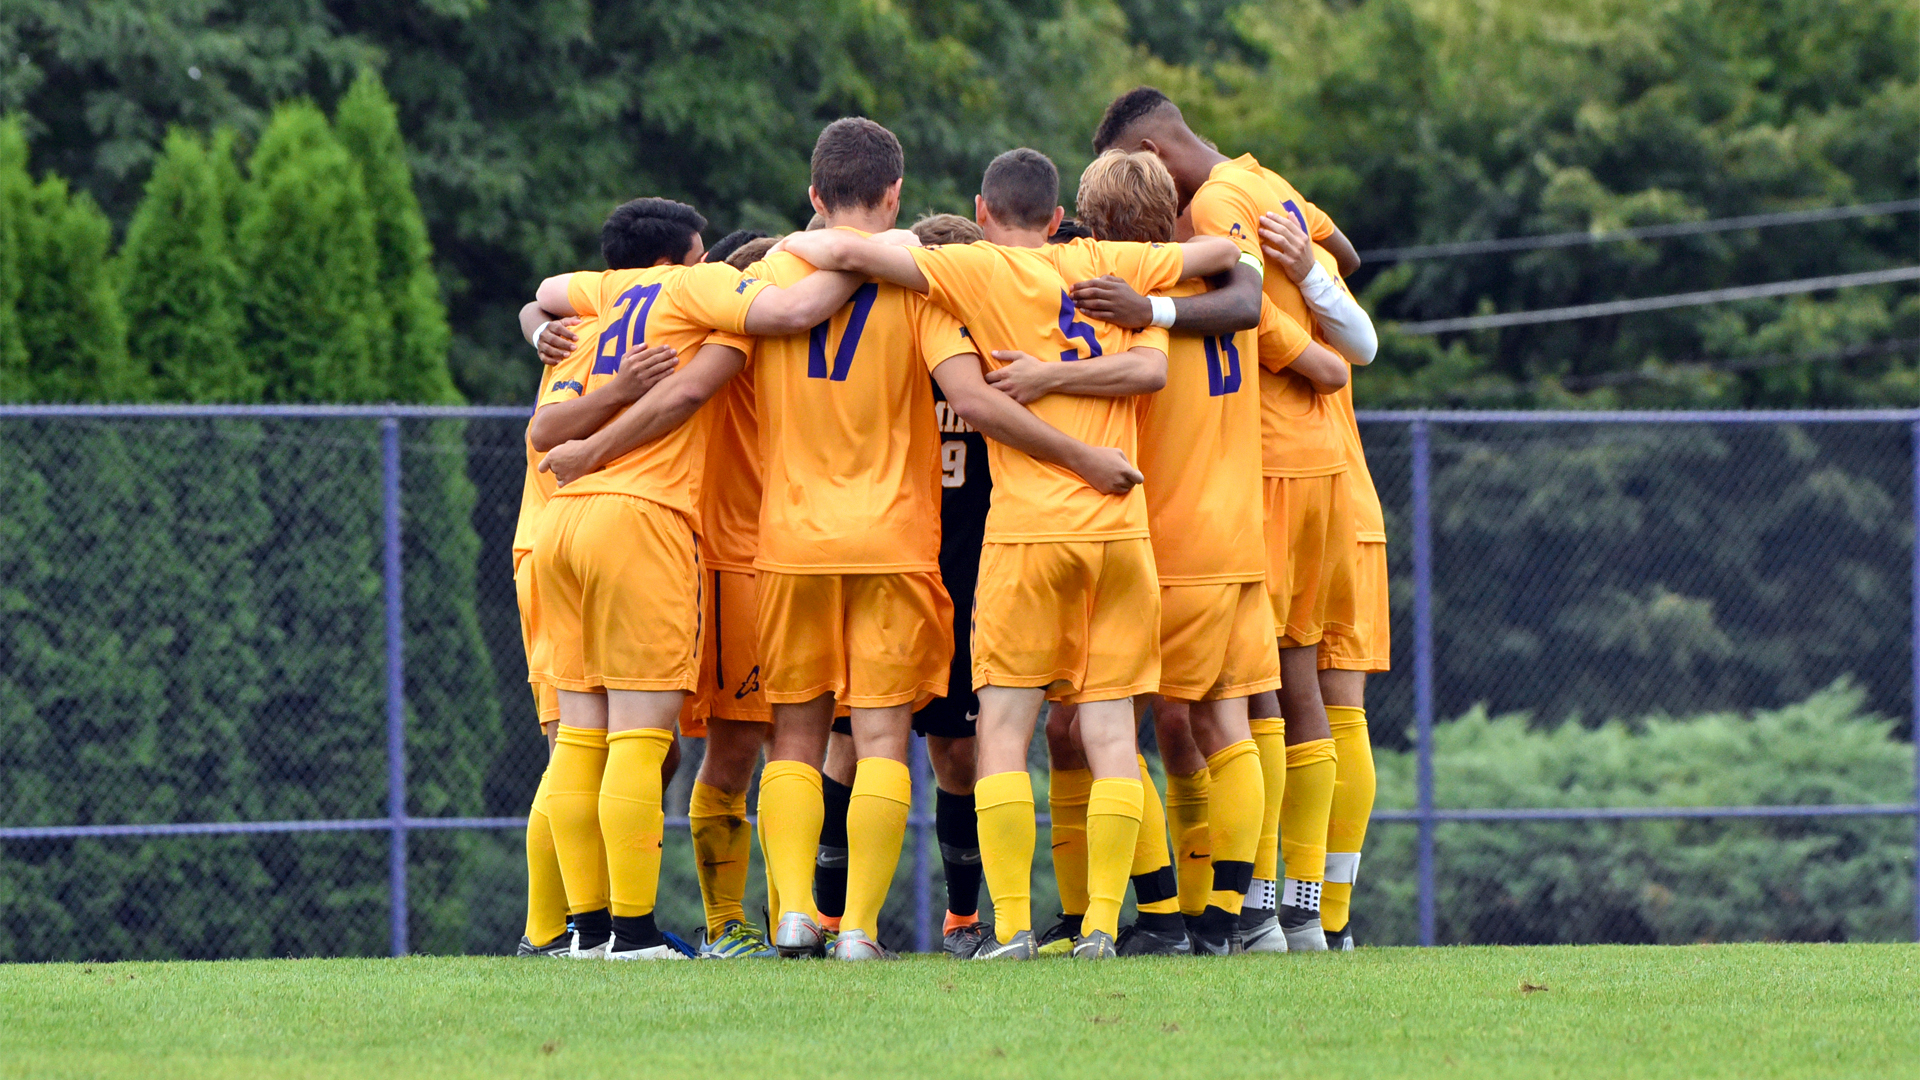 Men's Soccer Announces Summer Kids Camp and ID Camp - Elmira College